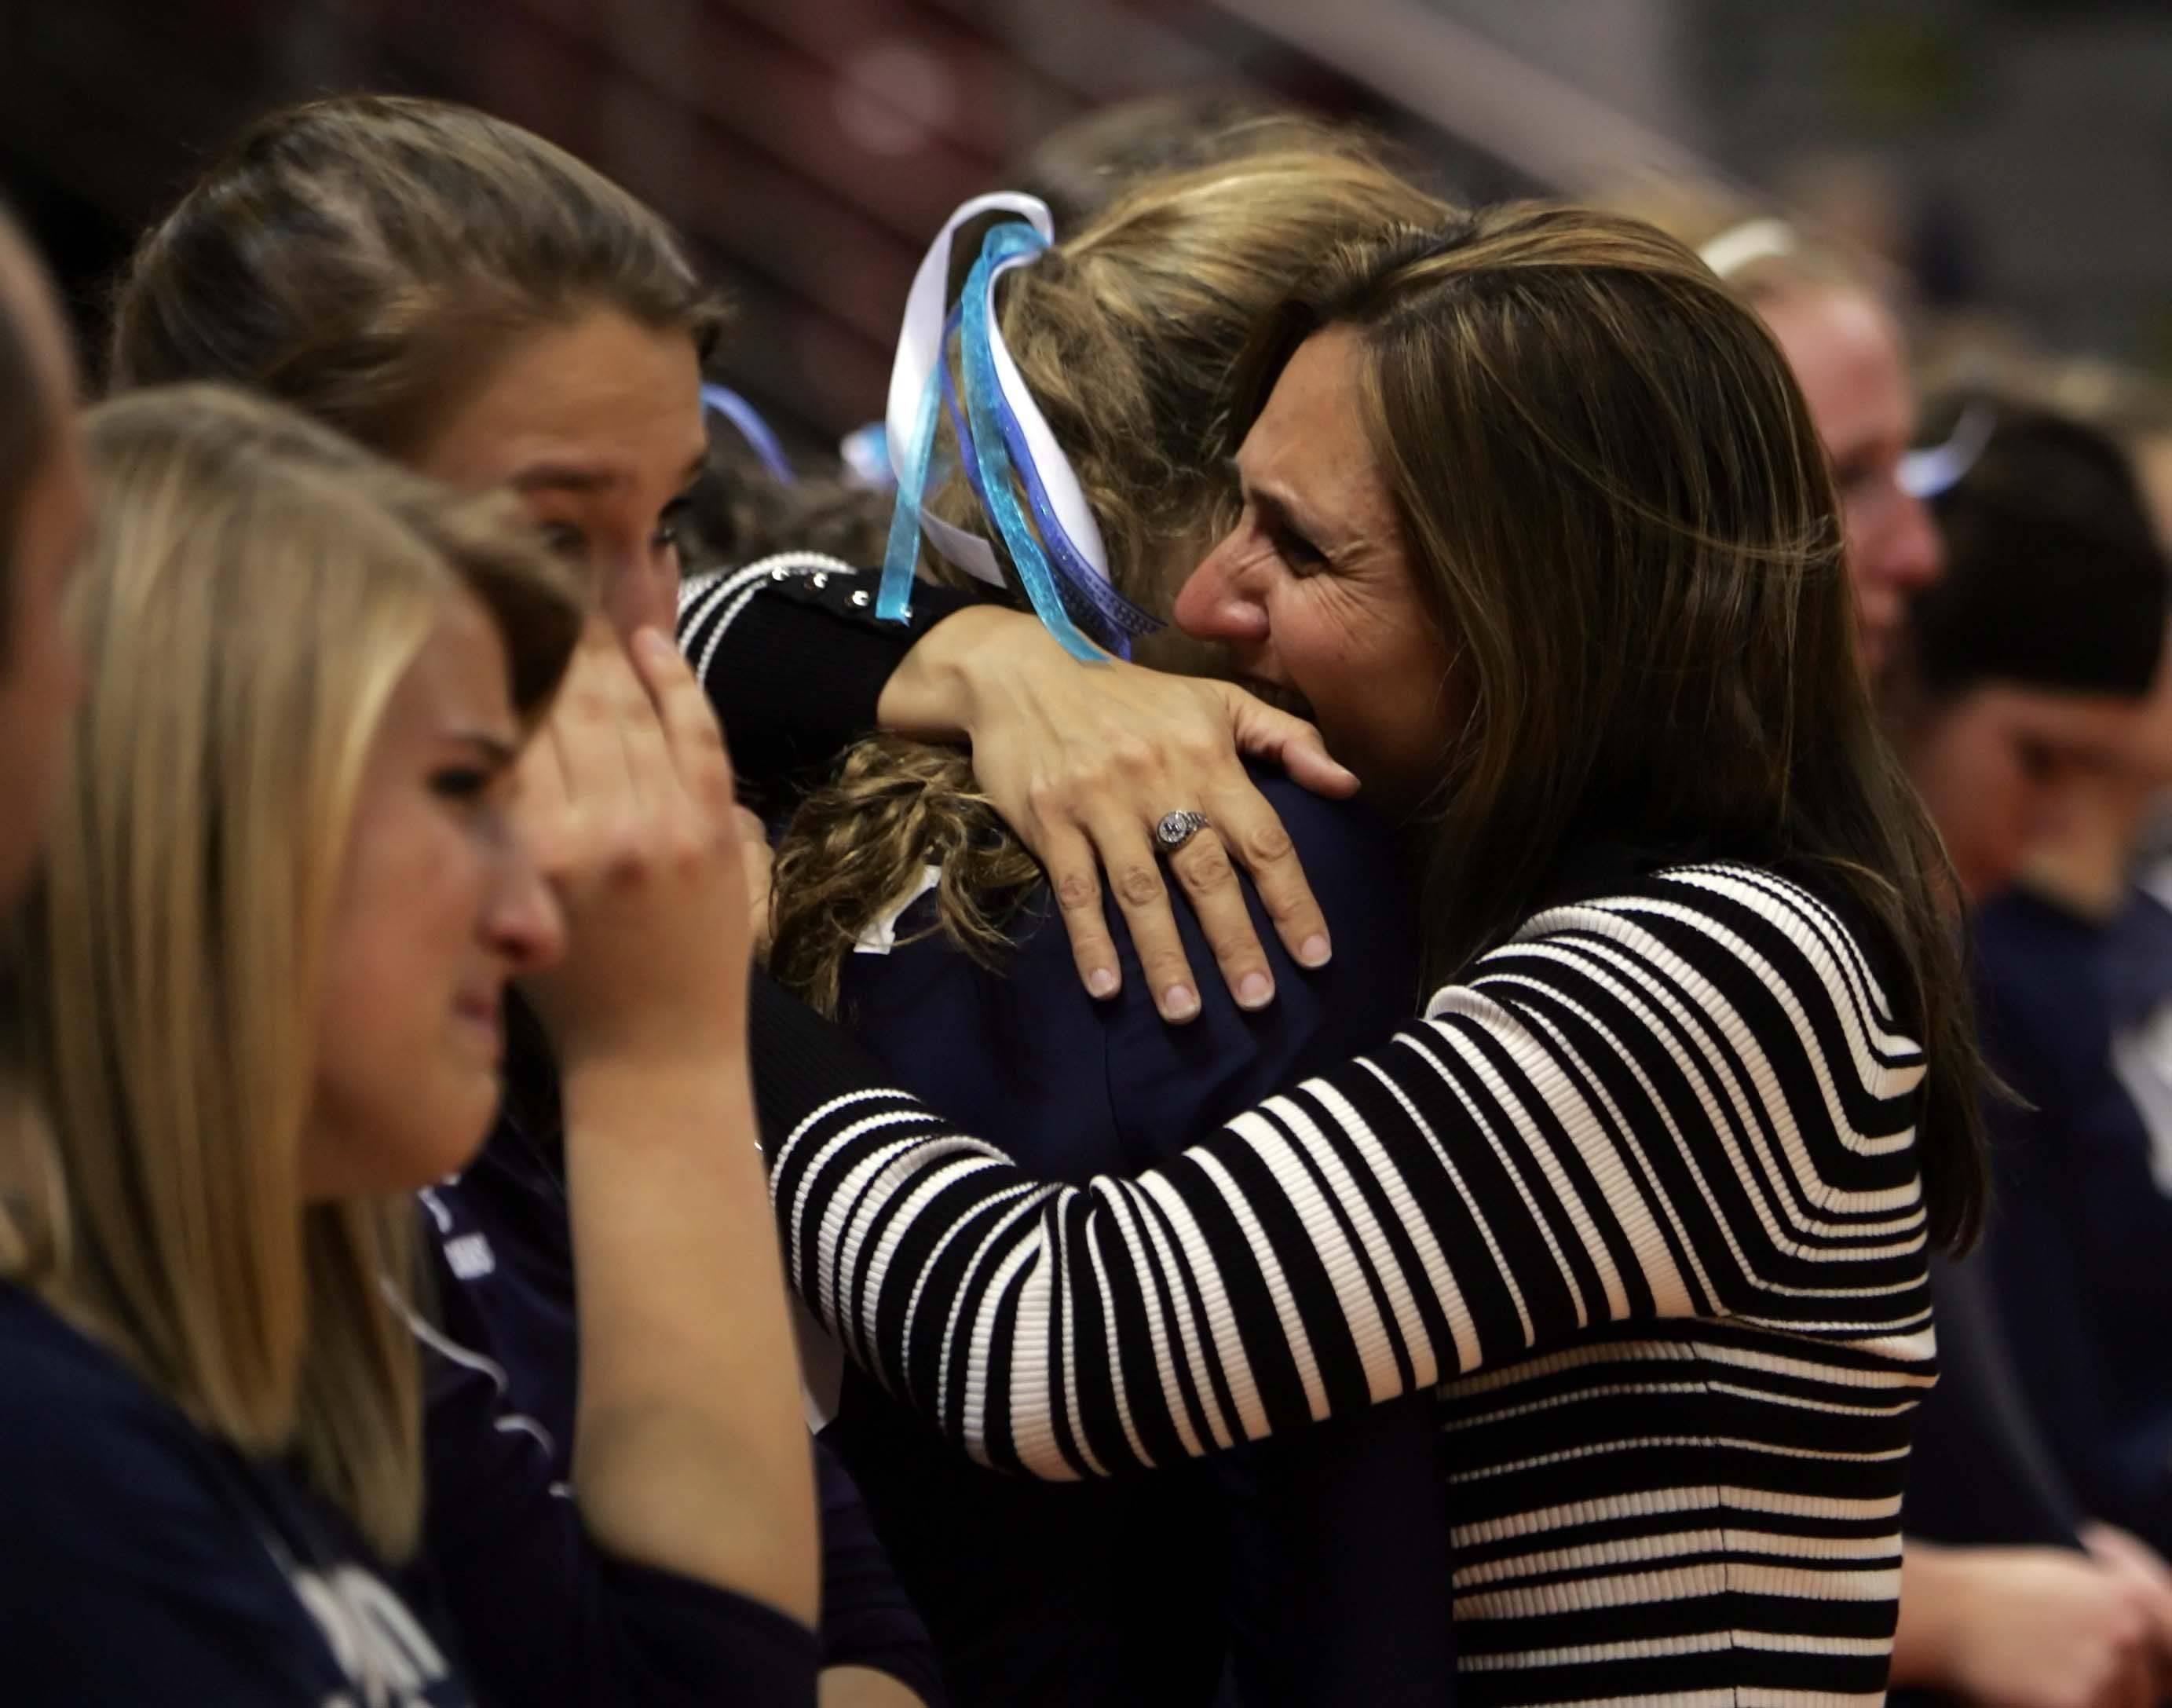 Cary-Grove coach Patty Langanis hugs her players after their loss to Lyons in the IHSA Class 4A State championship match Saturday, November 13, 2010 at Redbird Arena in Normal.